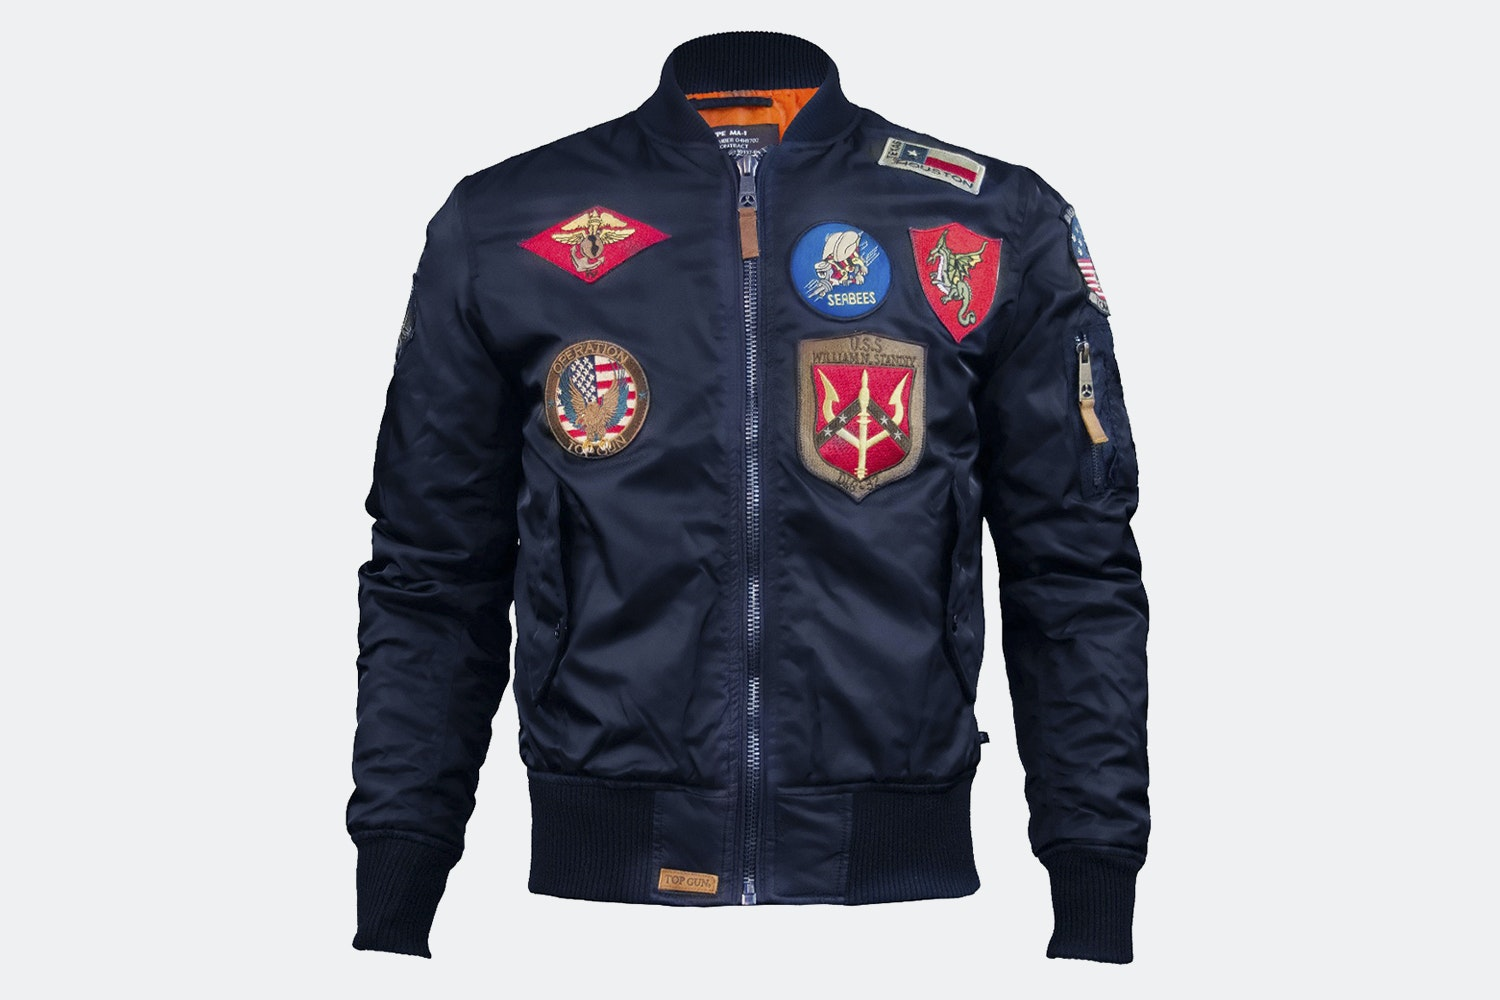 MA-1 nylon bomber with patches - Navy (+ $15)